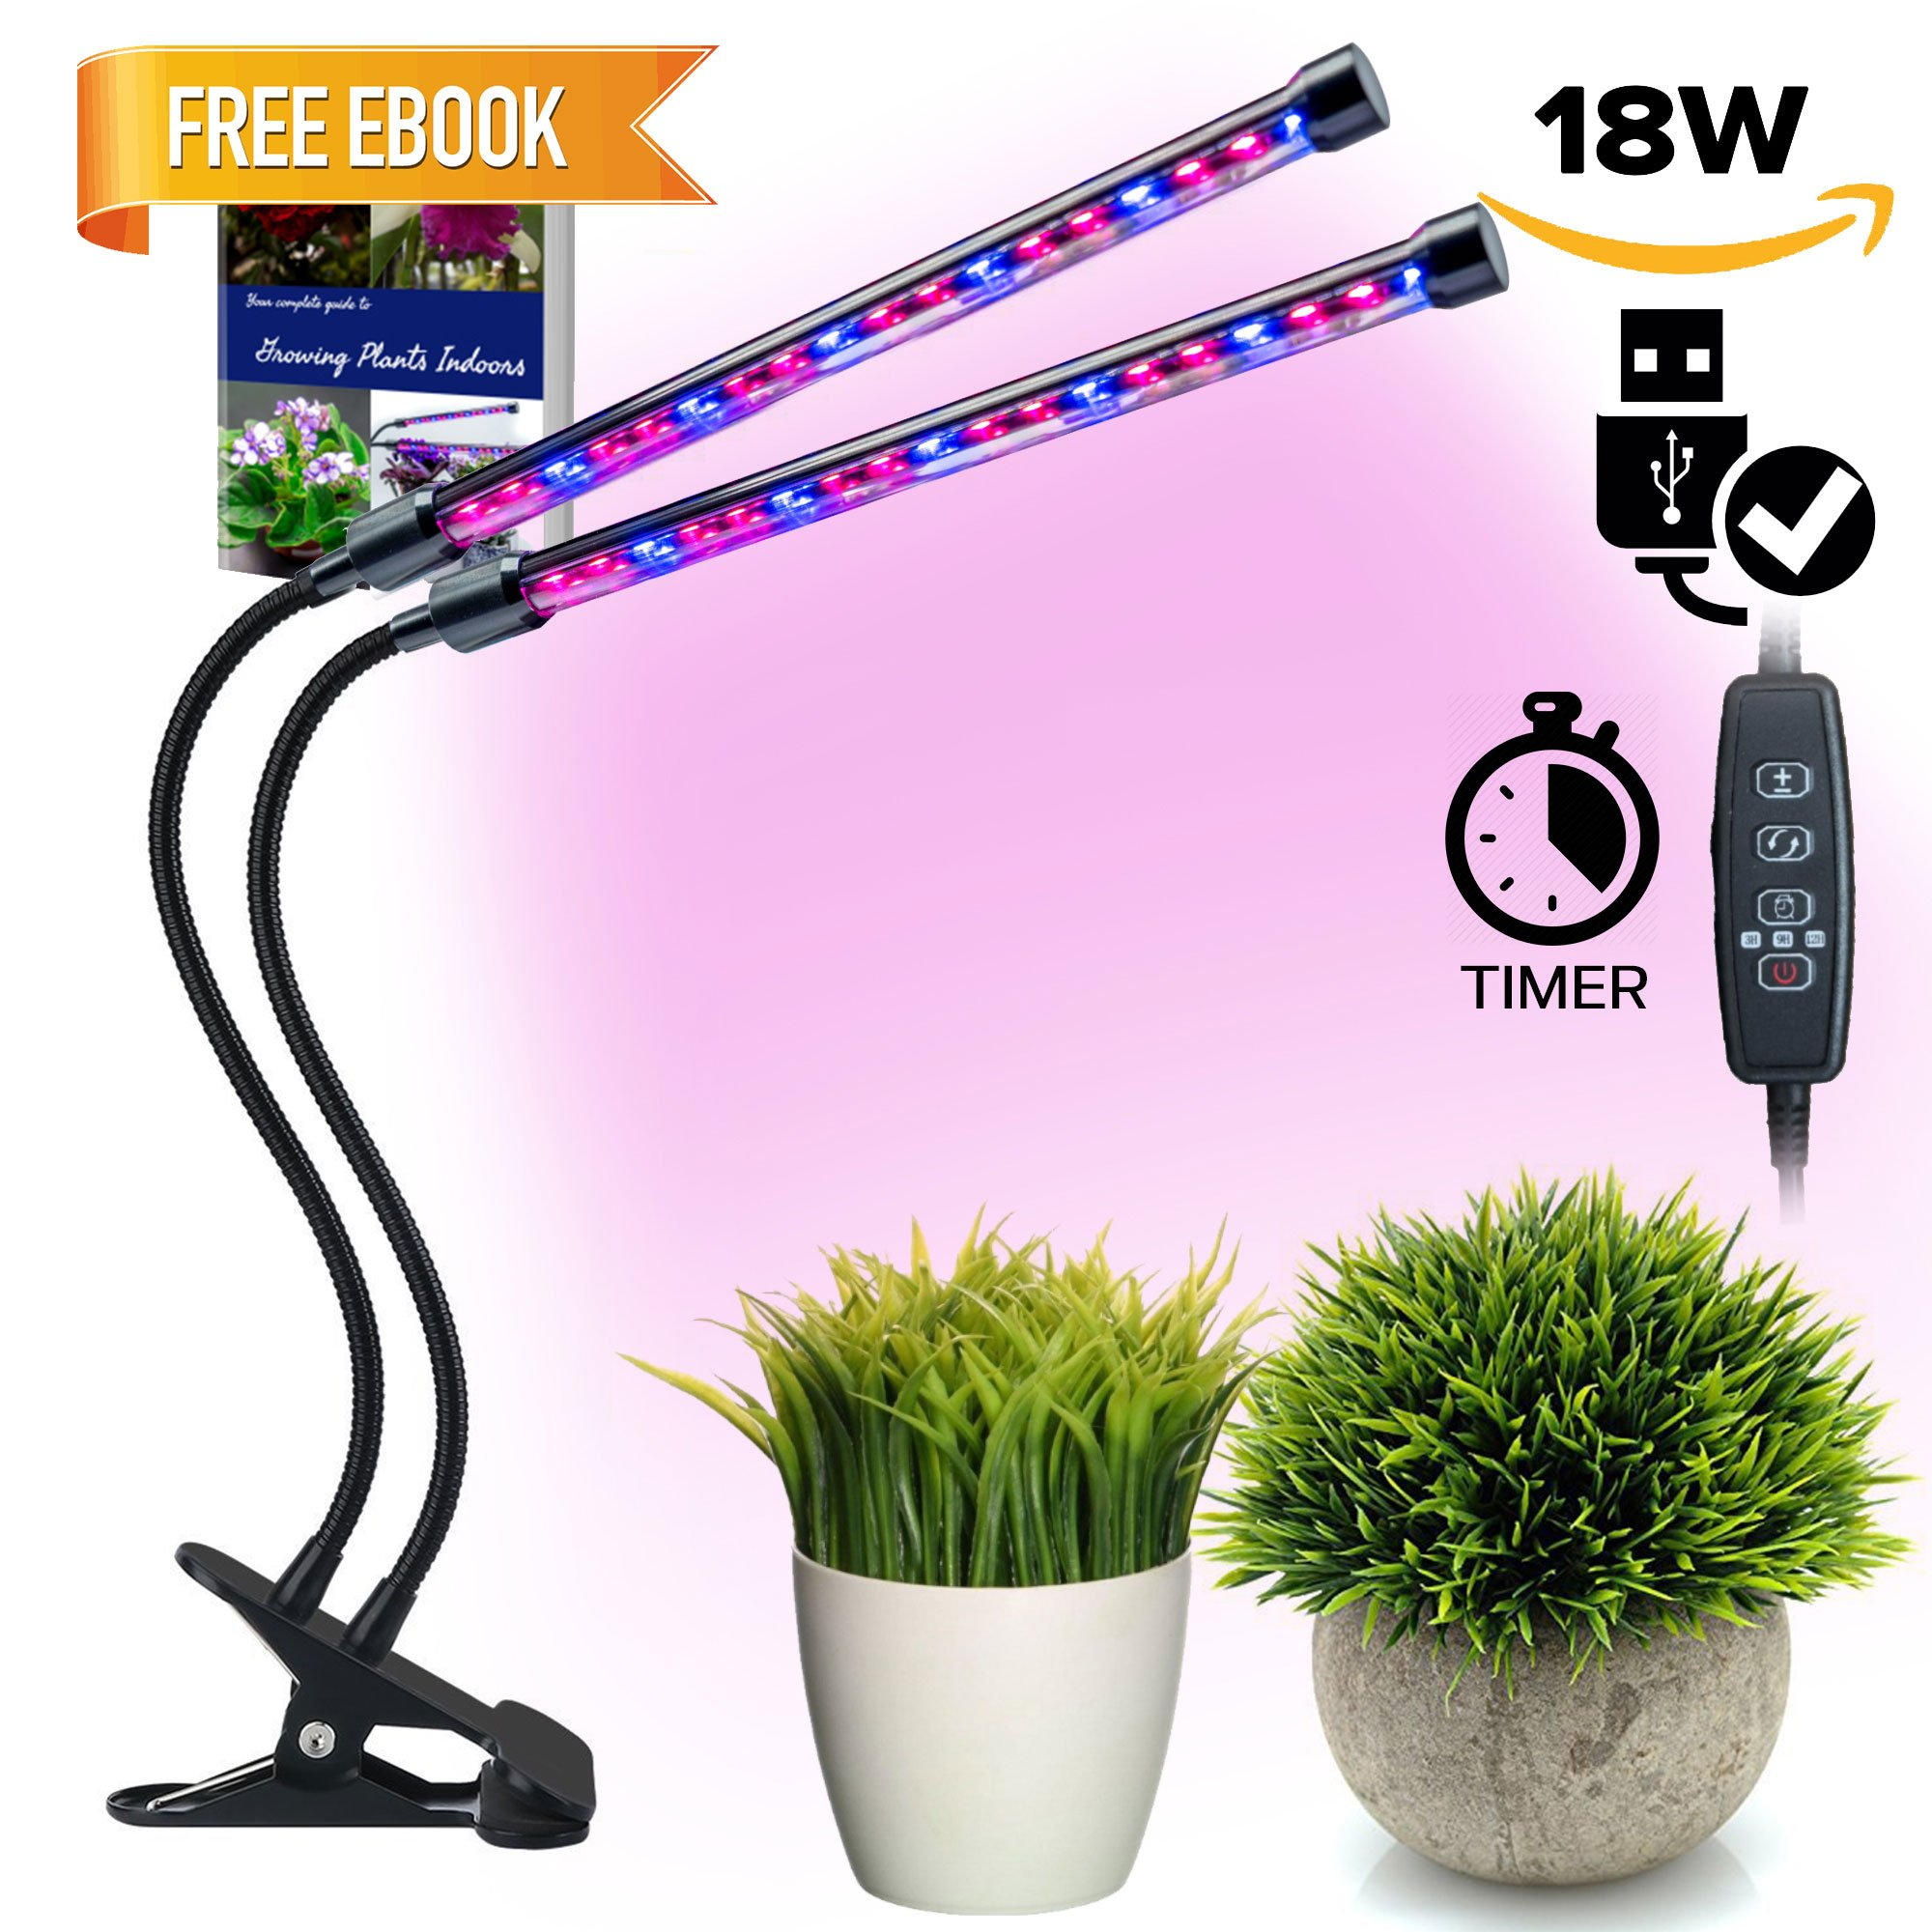 Dual Head LED Grow Lights by TMB Innovations | LED Dimmable Gooseneck Dual Head – for Indoor Plants with Red/Blue Spectrum, Adjustable Gooseneck, 3/9/12H Timer, 8 Dimming Levels [2018 UPGRADE + EBOOK]